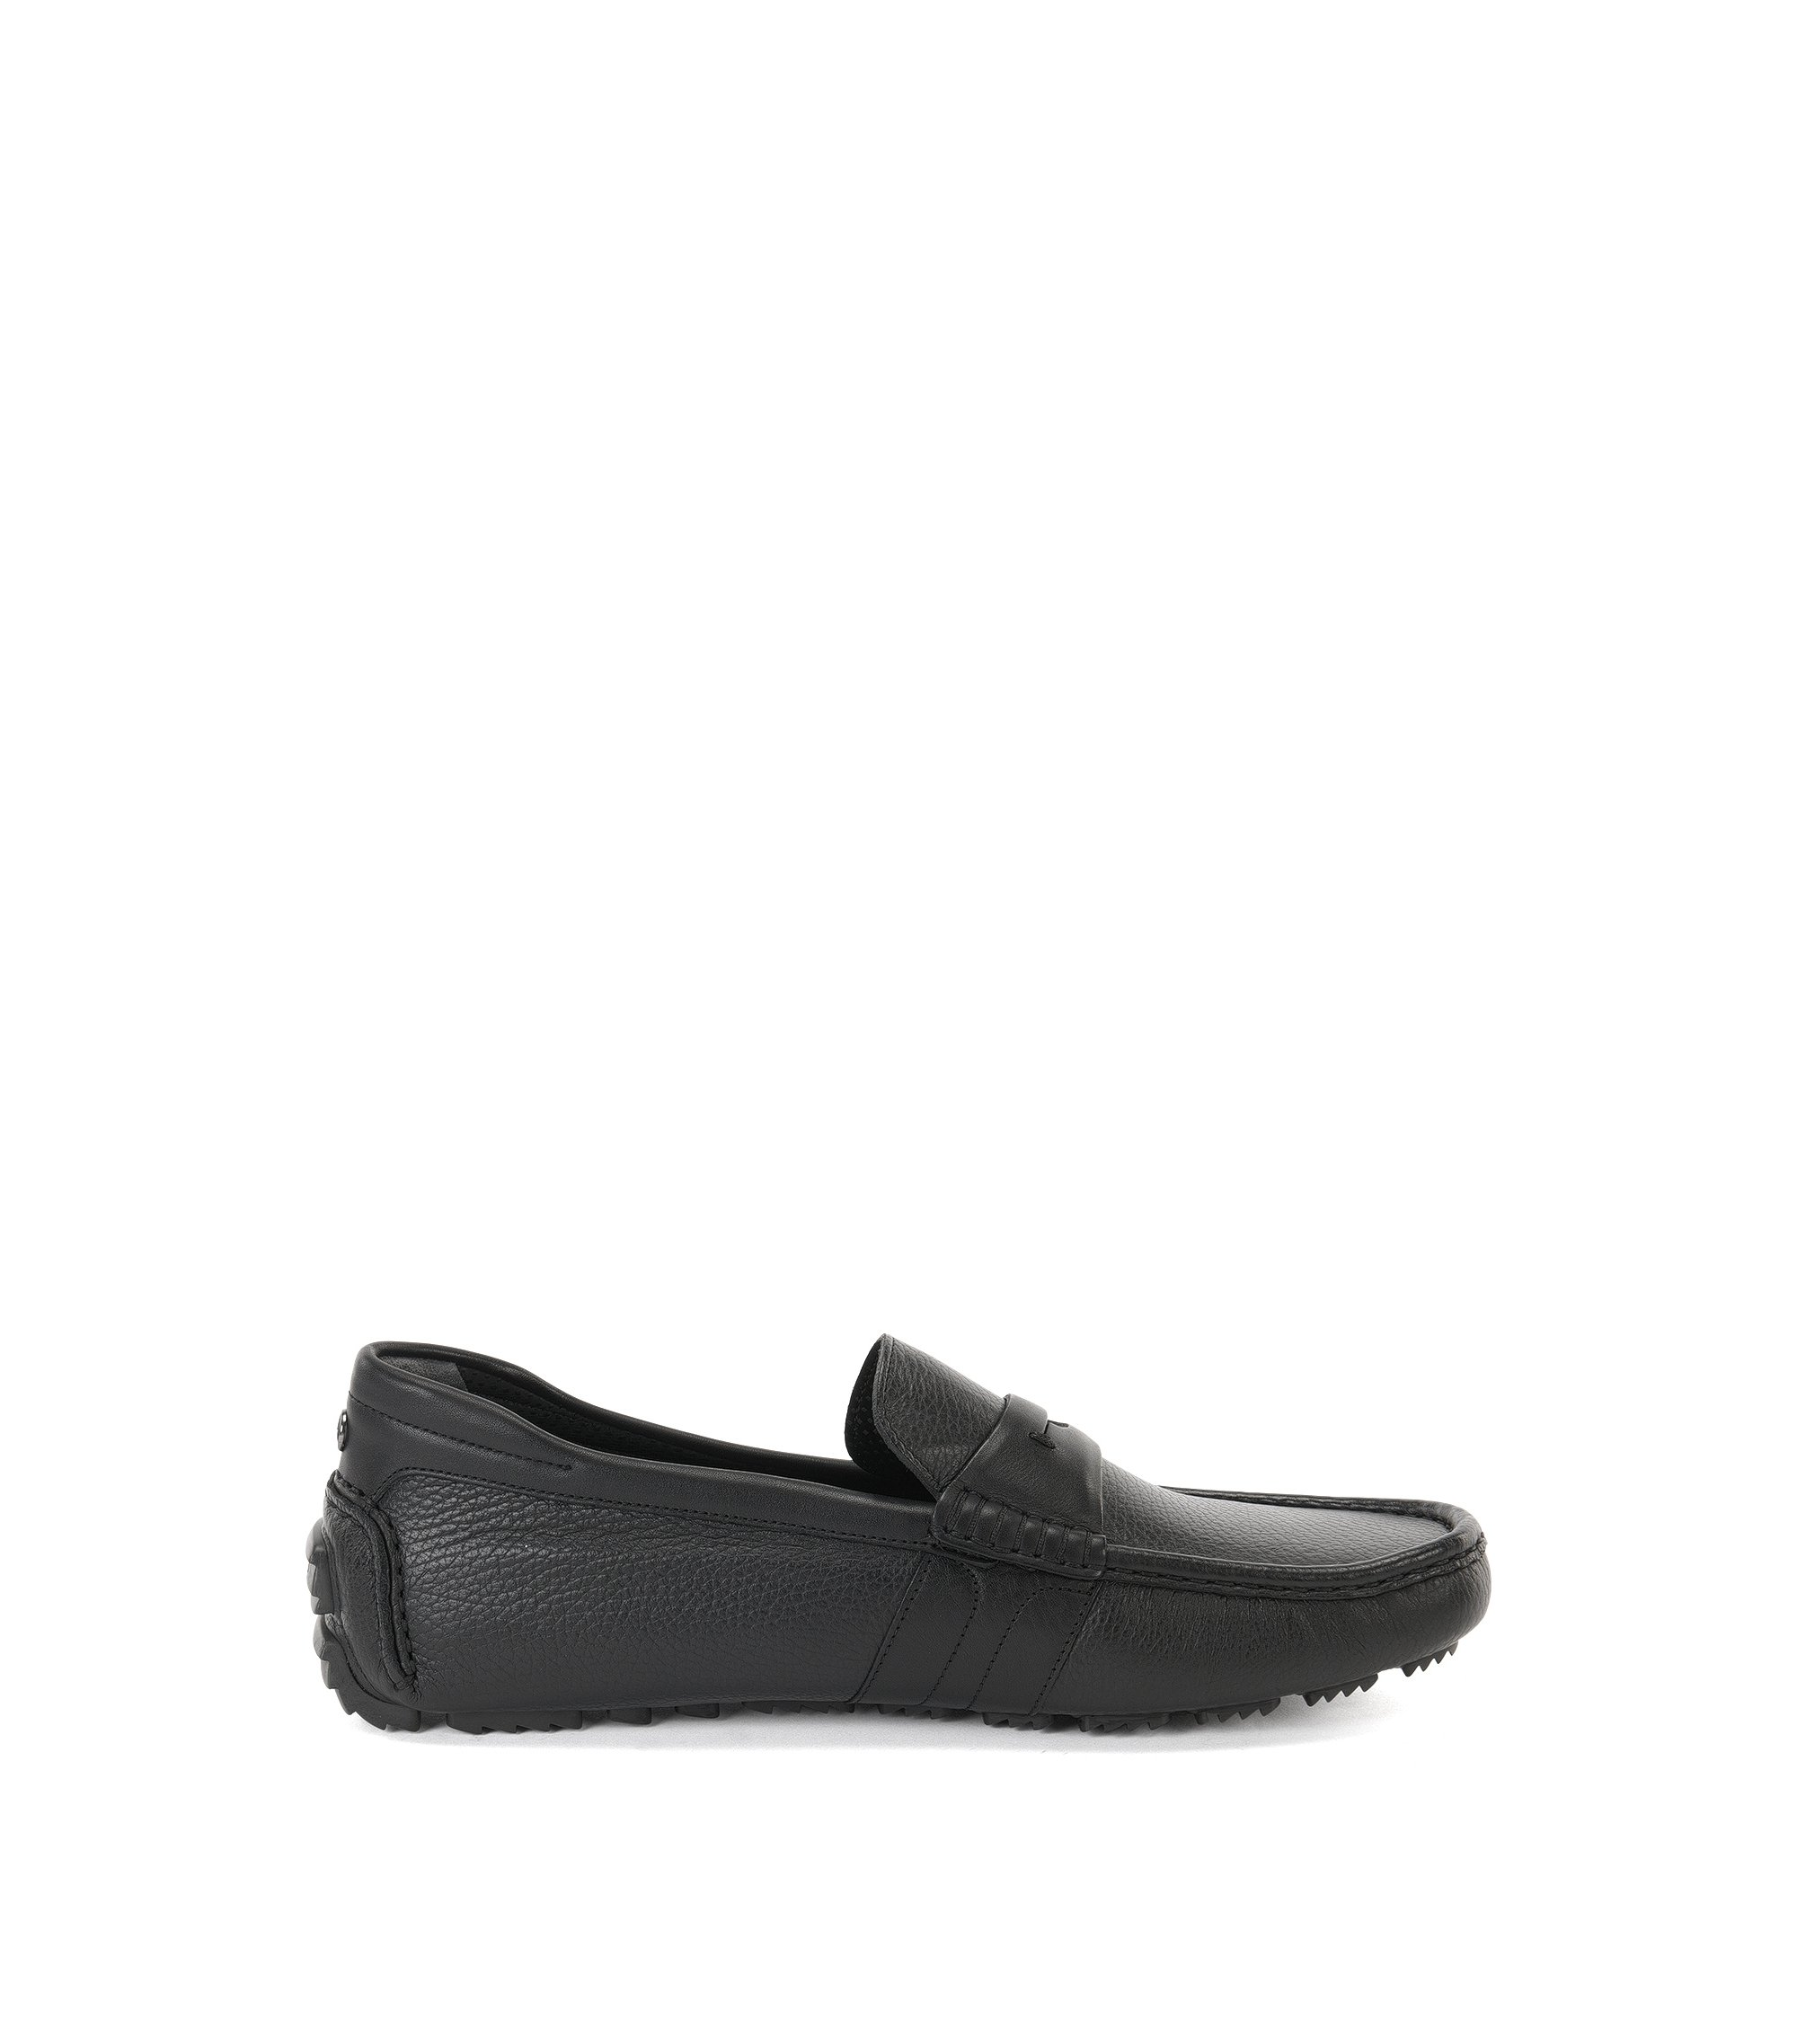 Mercedes-Benz Italian Leather Driving Loafer | Driver Mocc Gr, Black